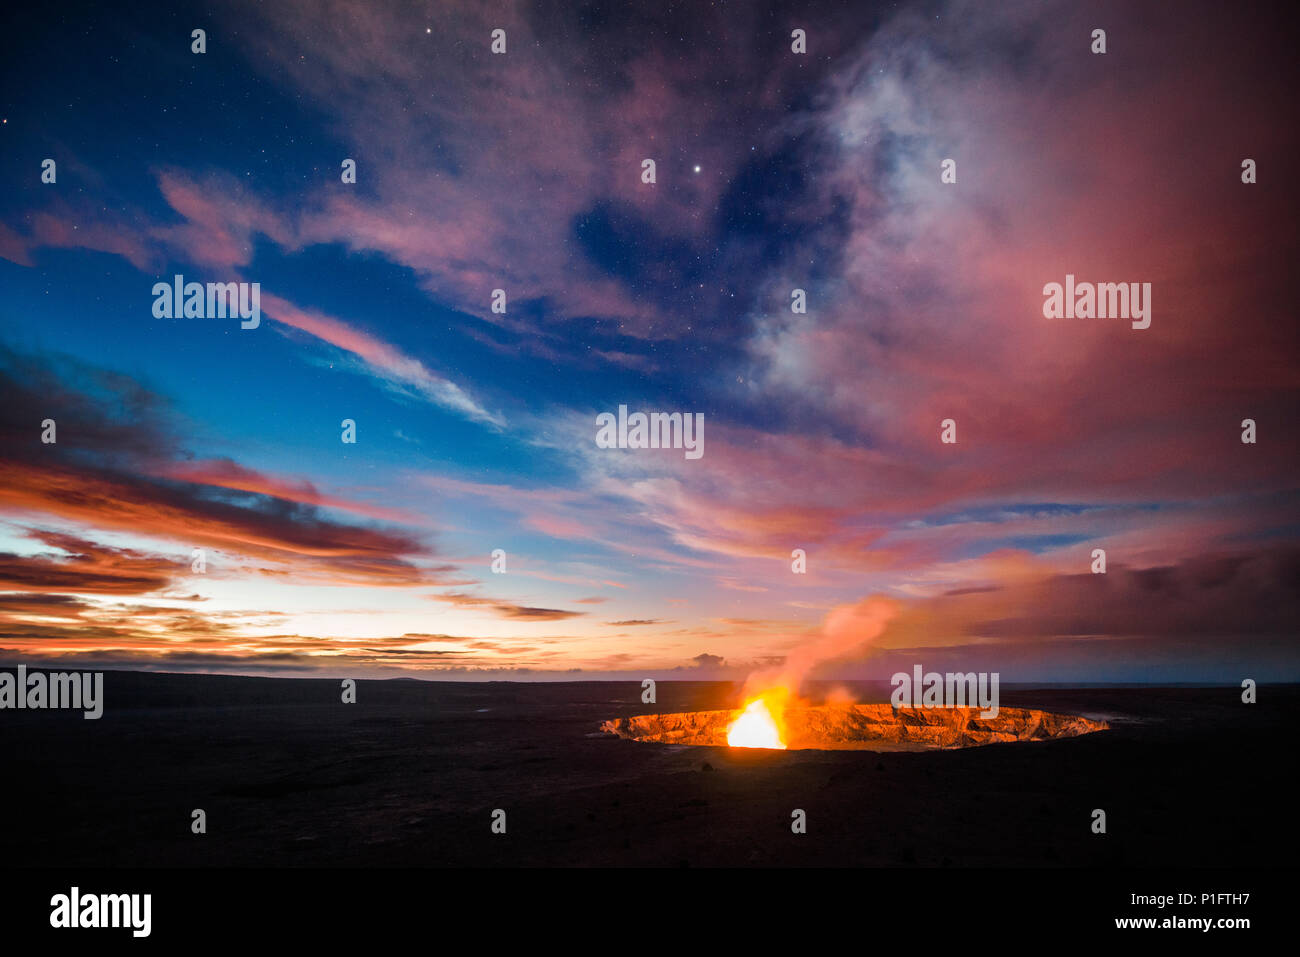 Sunrise over the lava lake in the Halemaumau Crater of the Kilauea Volcanoe on the big island of Hawaii. - Stock Image